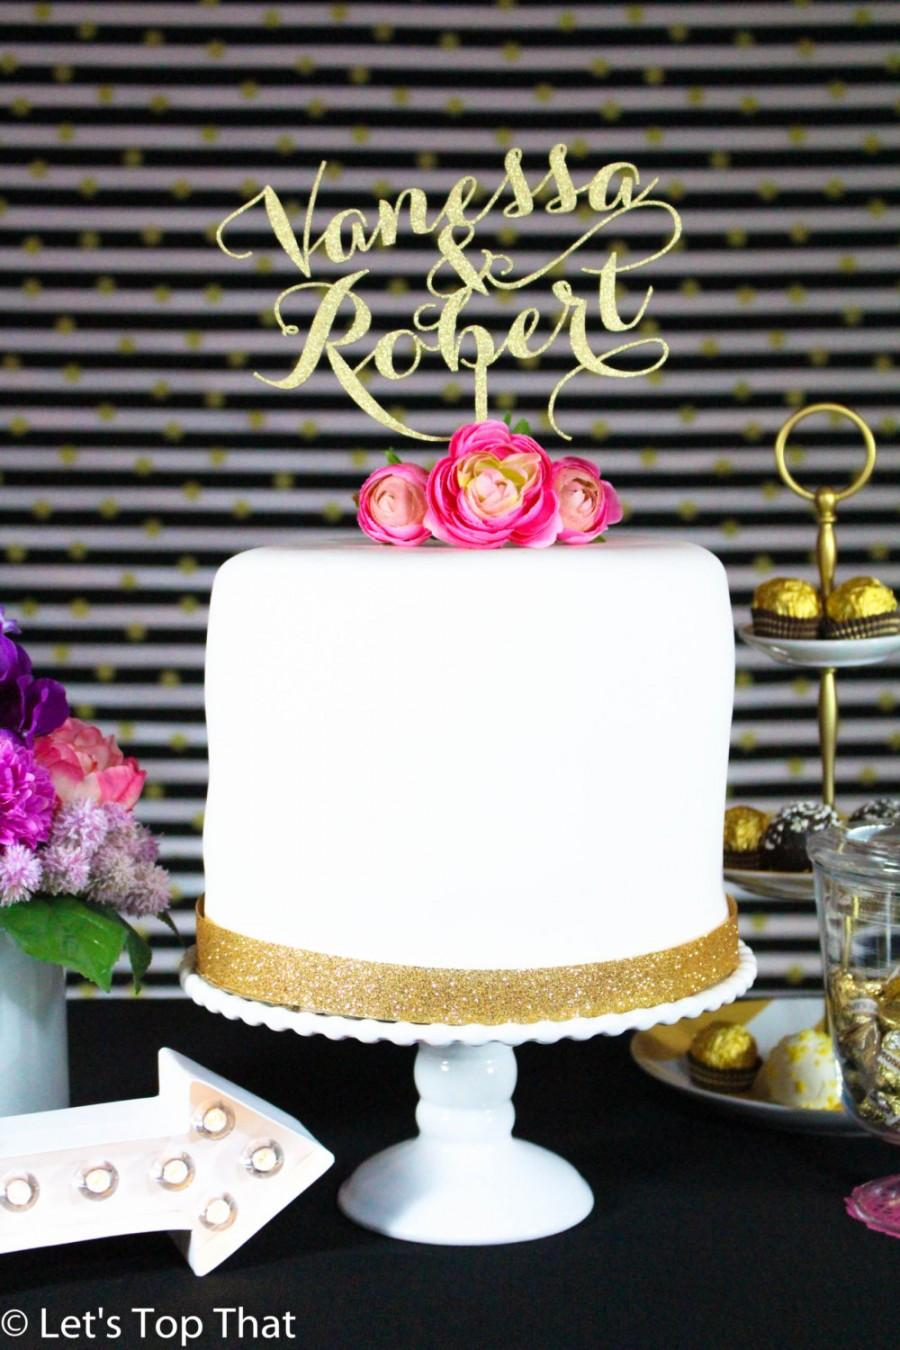 زفاف - Wedding Cake Topper, Custom Cake Topper, Monogram Cake Topper